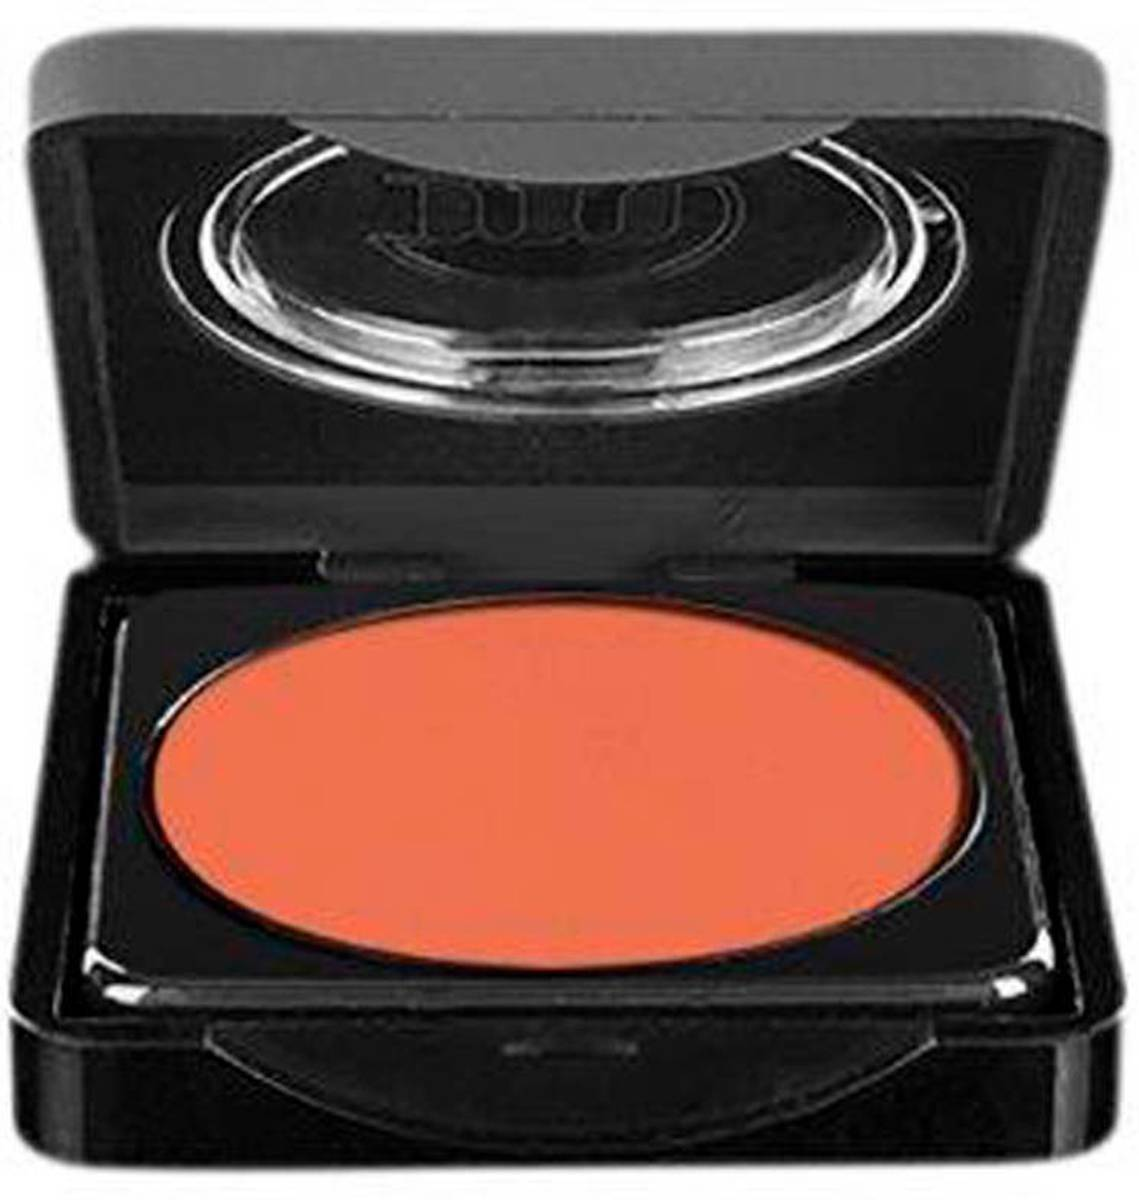 Make-up Studio Blusher Blush 3 gr